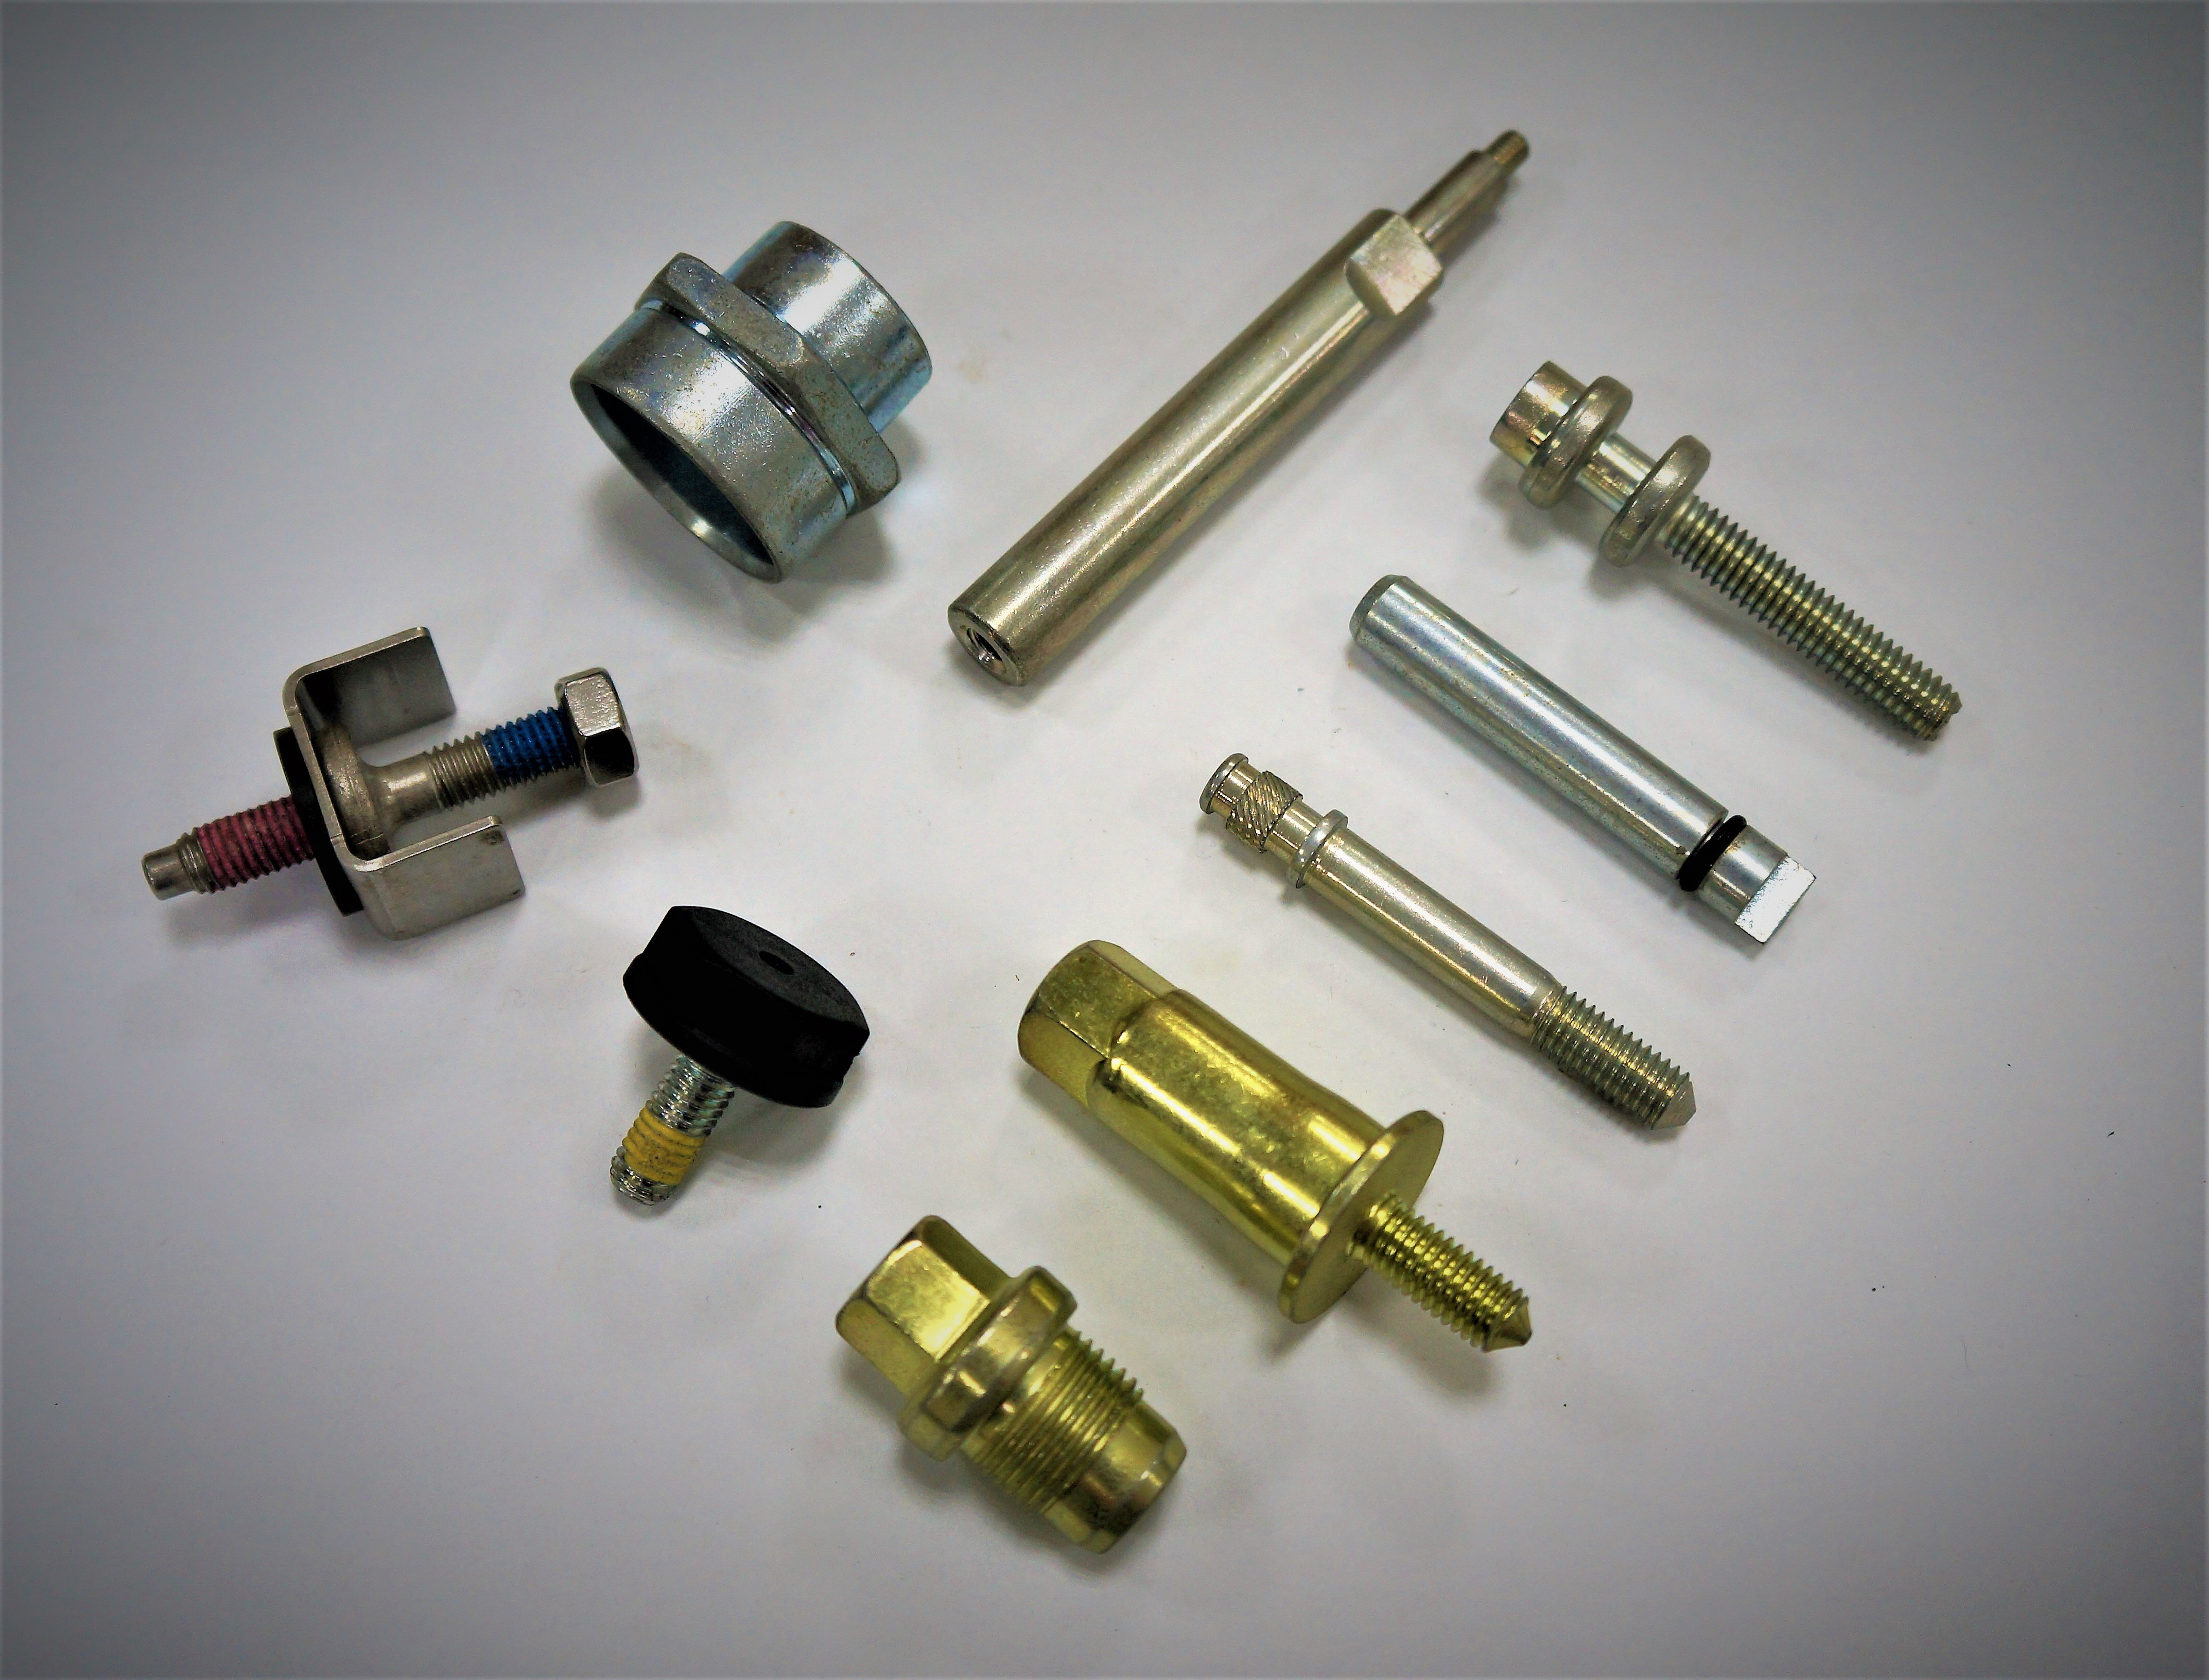 Bus Special Screw with Nylon for Vehicle Fastener made by Sunny Screw Industry 三能螺栓工業股份有限公司 - MatchSupplier.com